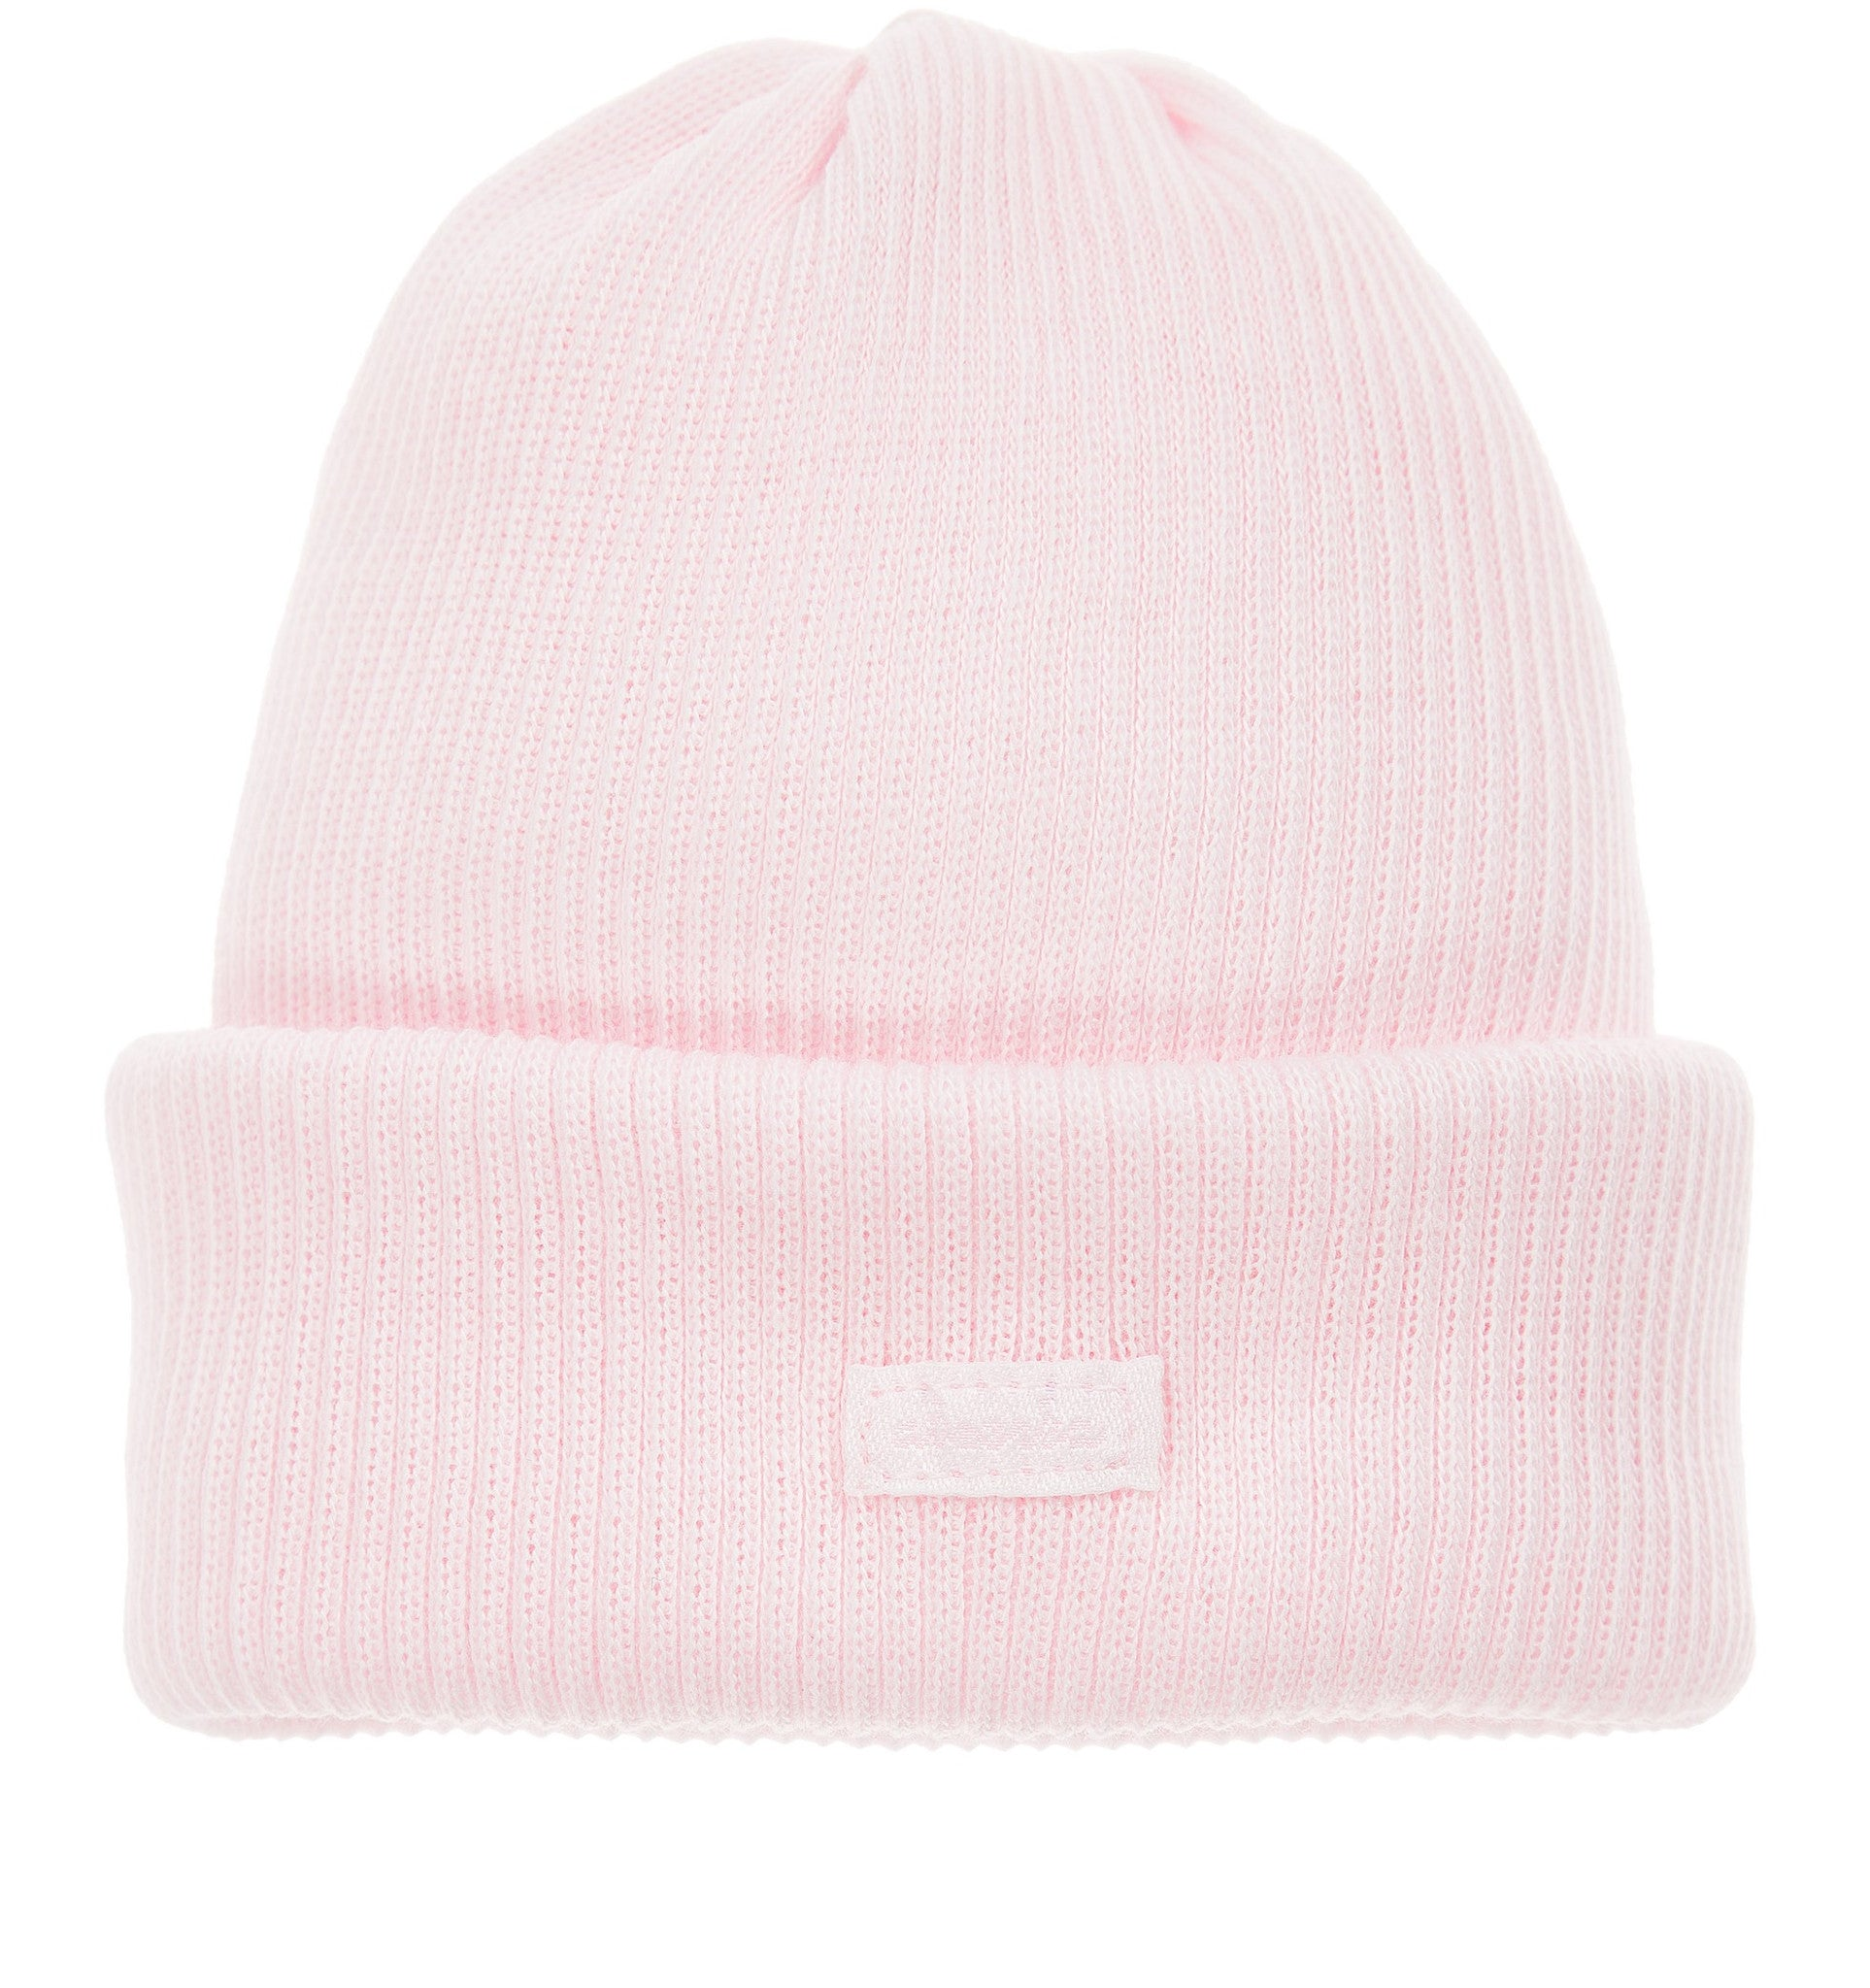 Absorba pink Newborn hat